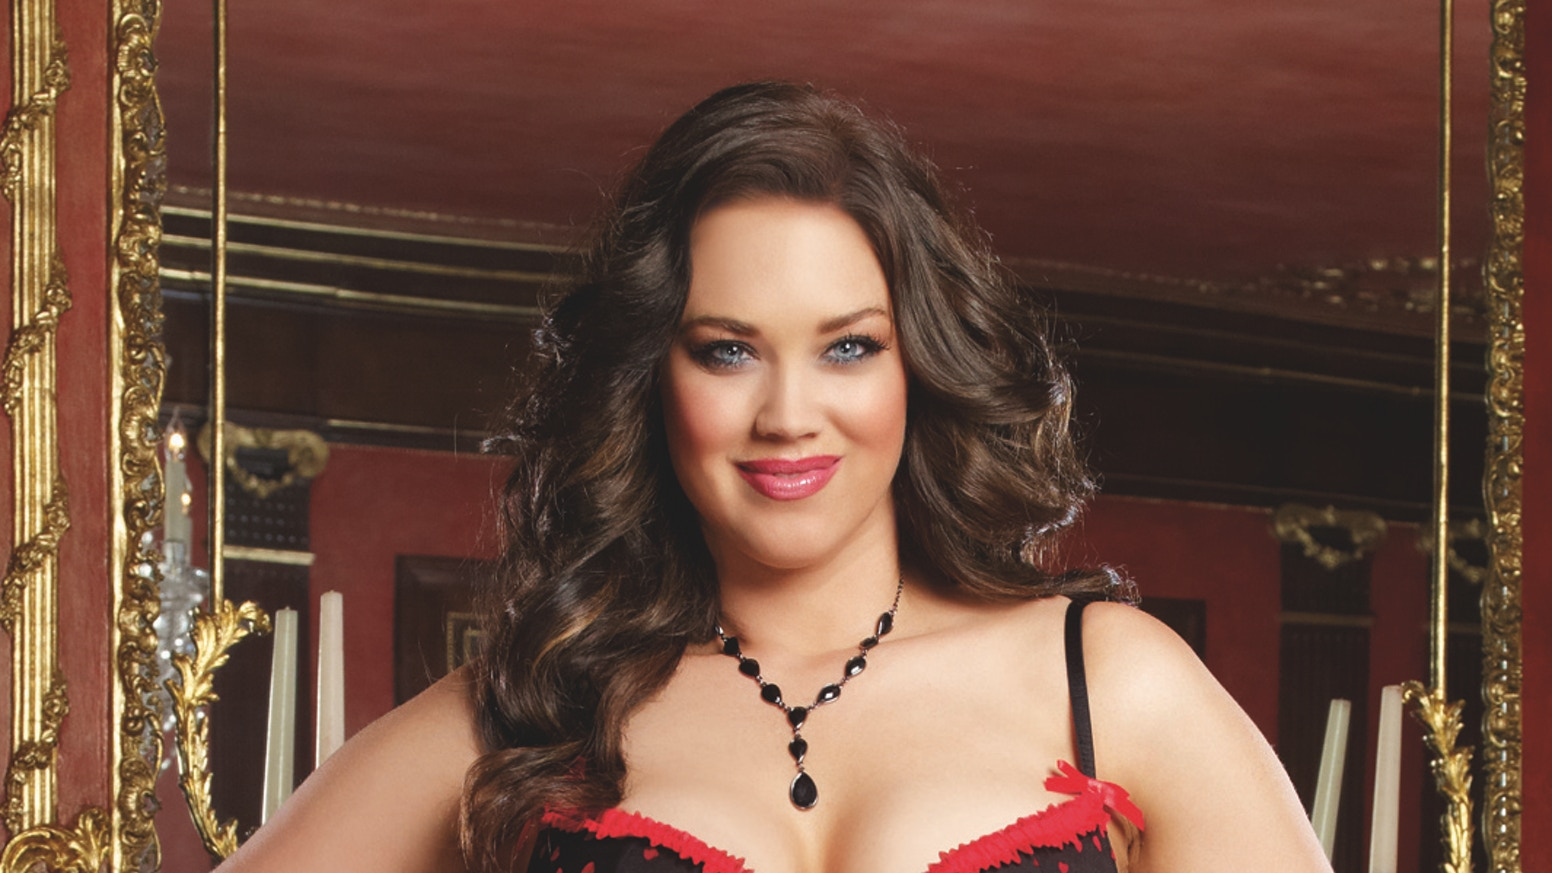 372539b6d64 Curvy Girlz Lingerie wants to come to a city near you to show you the  latest in sexy lingerie for full figured divas! Check us out!